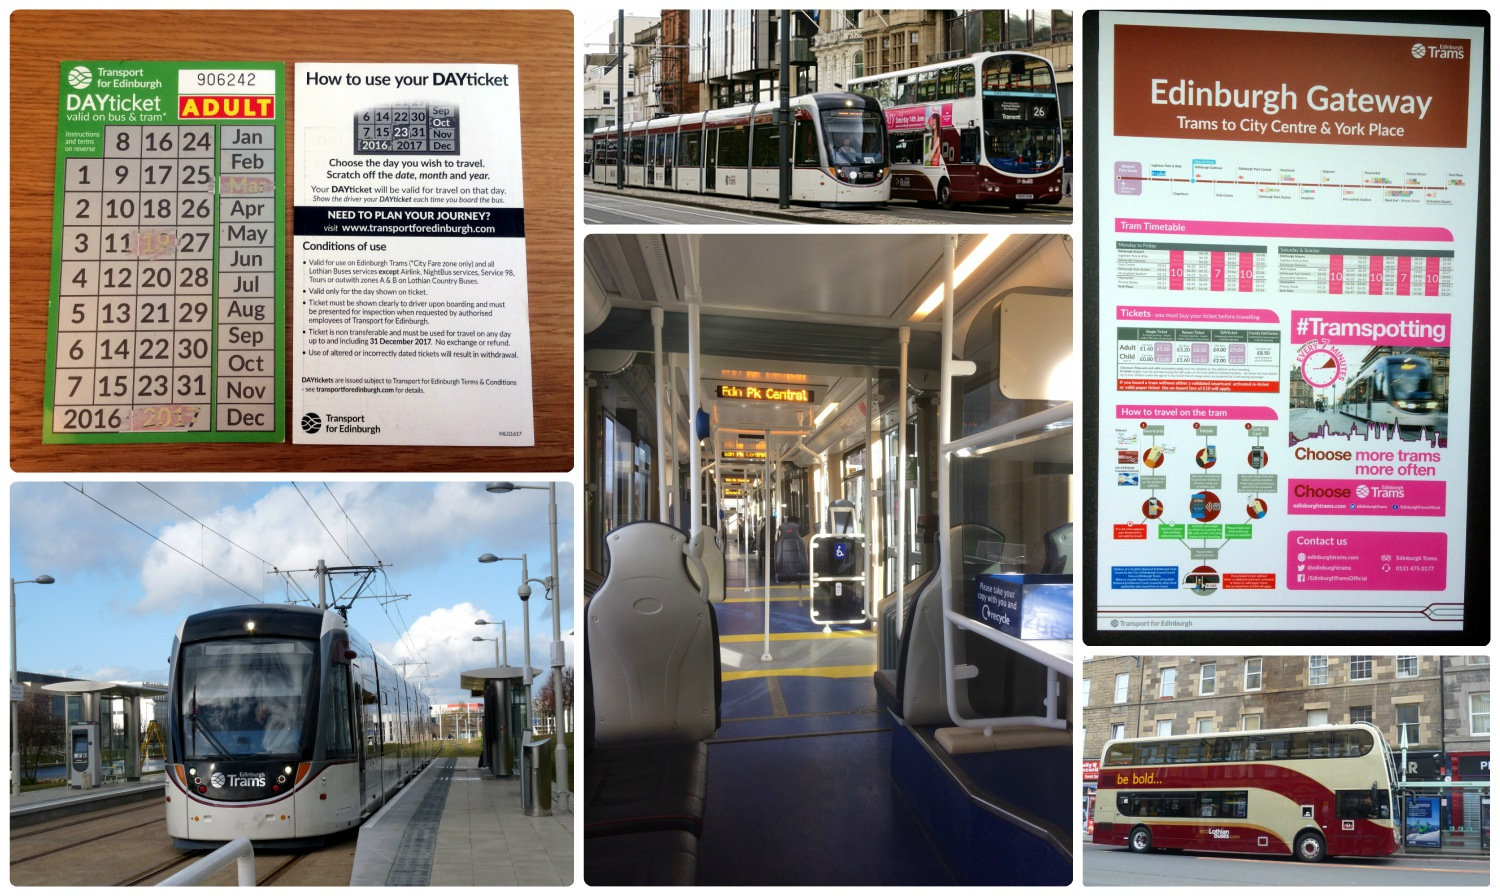 Top, left to right: Scratch day pass, Lothian tram and bus, tram timetable and route sign, tram station, onboard the tram, Lothian bus.